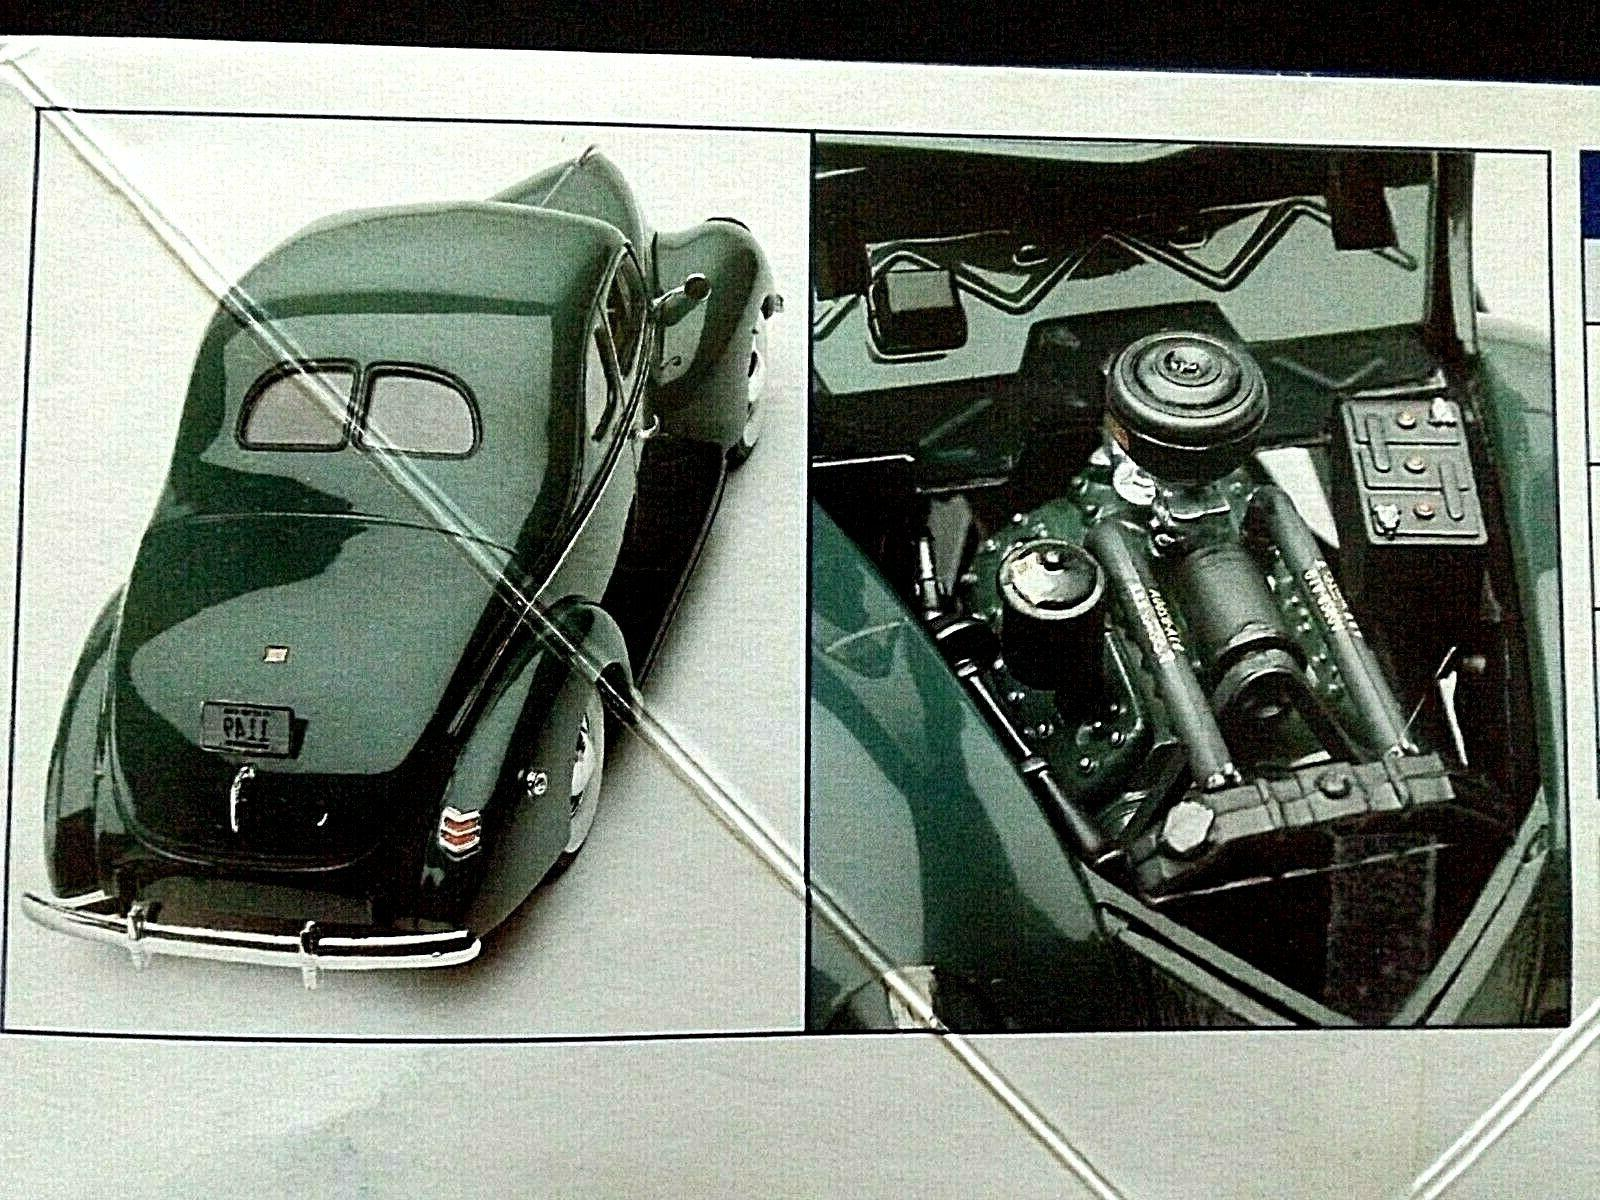 Standard Coupe Revell 1:25 Skill Level